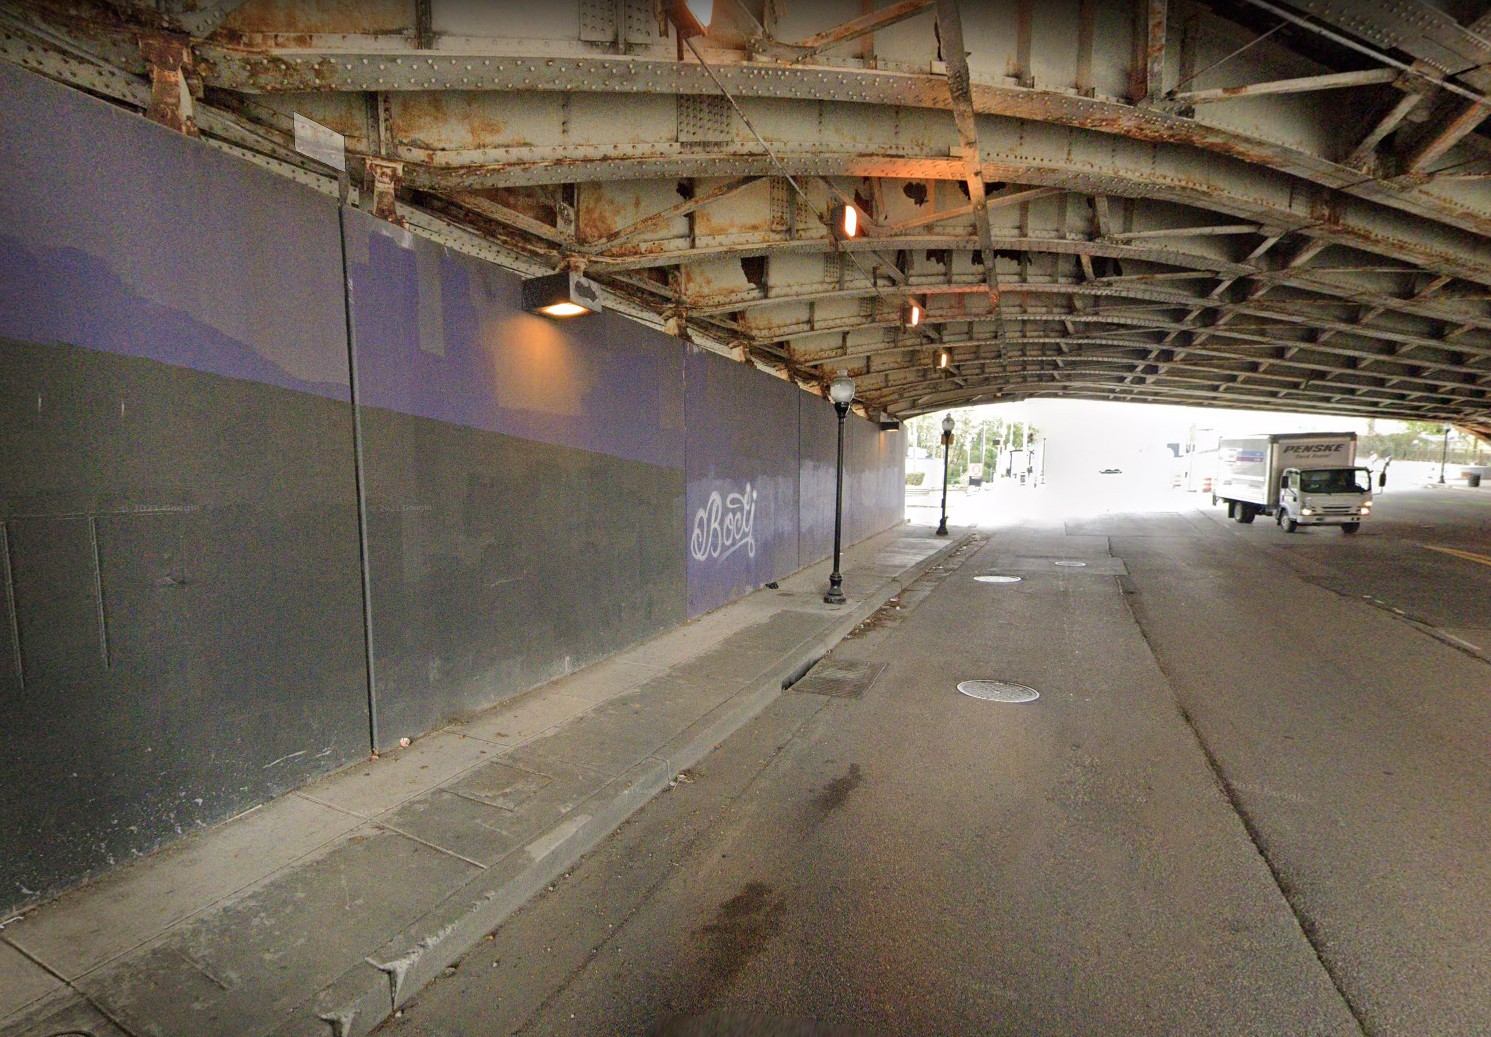 north wall of the I-83 underpass at North Avenue